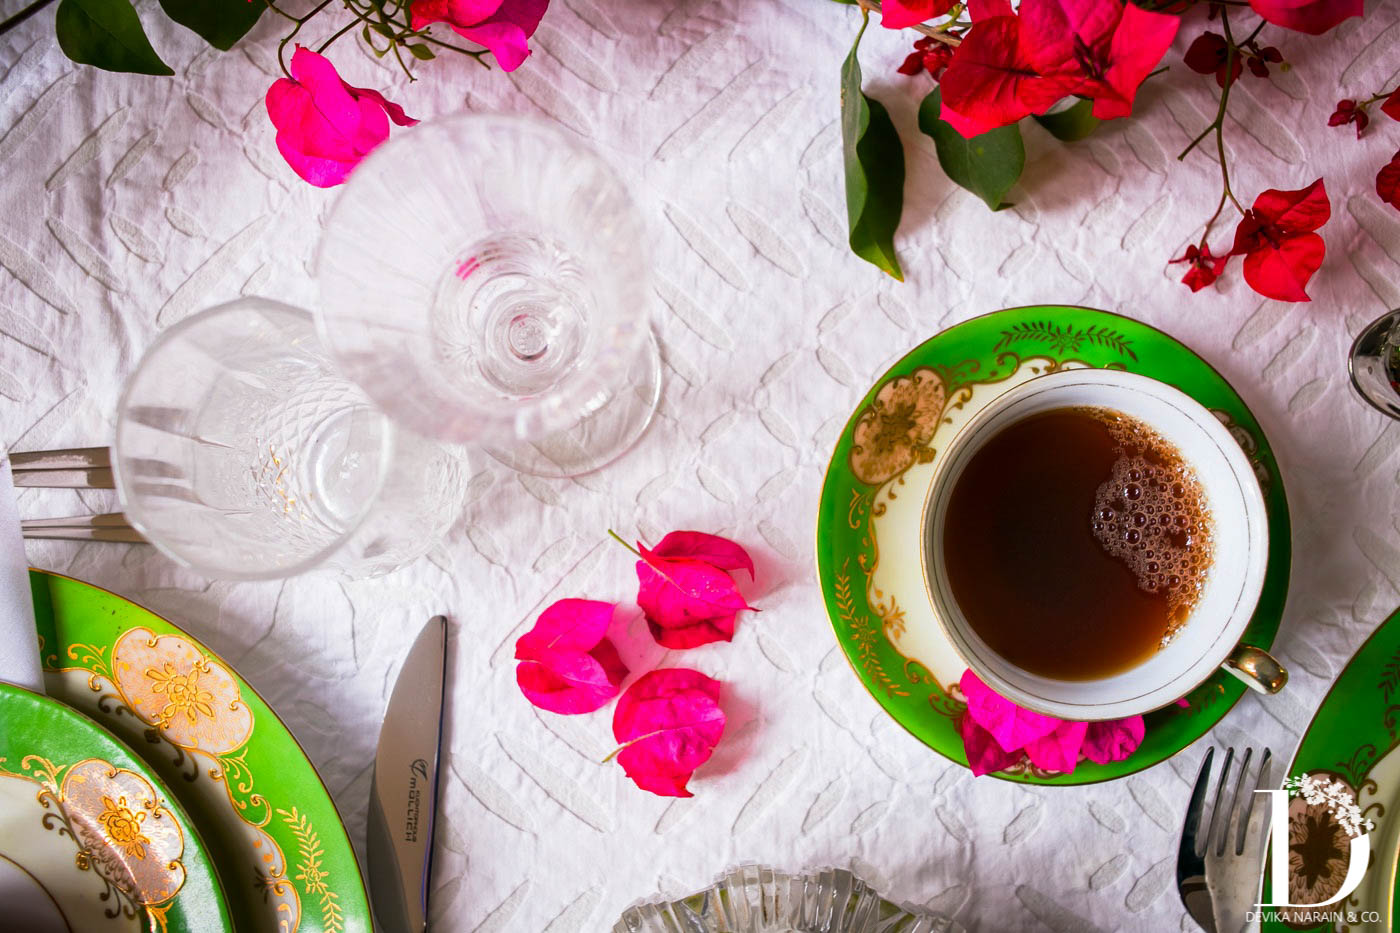 Table styling with everyday objects - A personal session with Devika where she shares tips, ideas and inspirations on how to style a table using basic household objects.Fee: INR 2500 + 18% GSTDate: August 17th, 2019Time: 11am   3pmDuration: 90minsLocation: Bandra WSOLD OUT